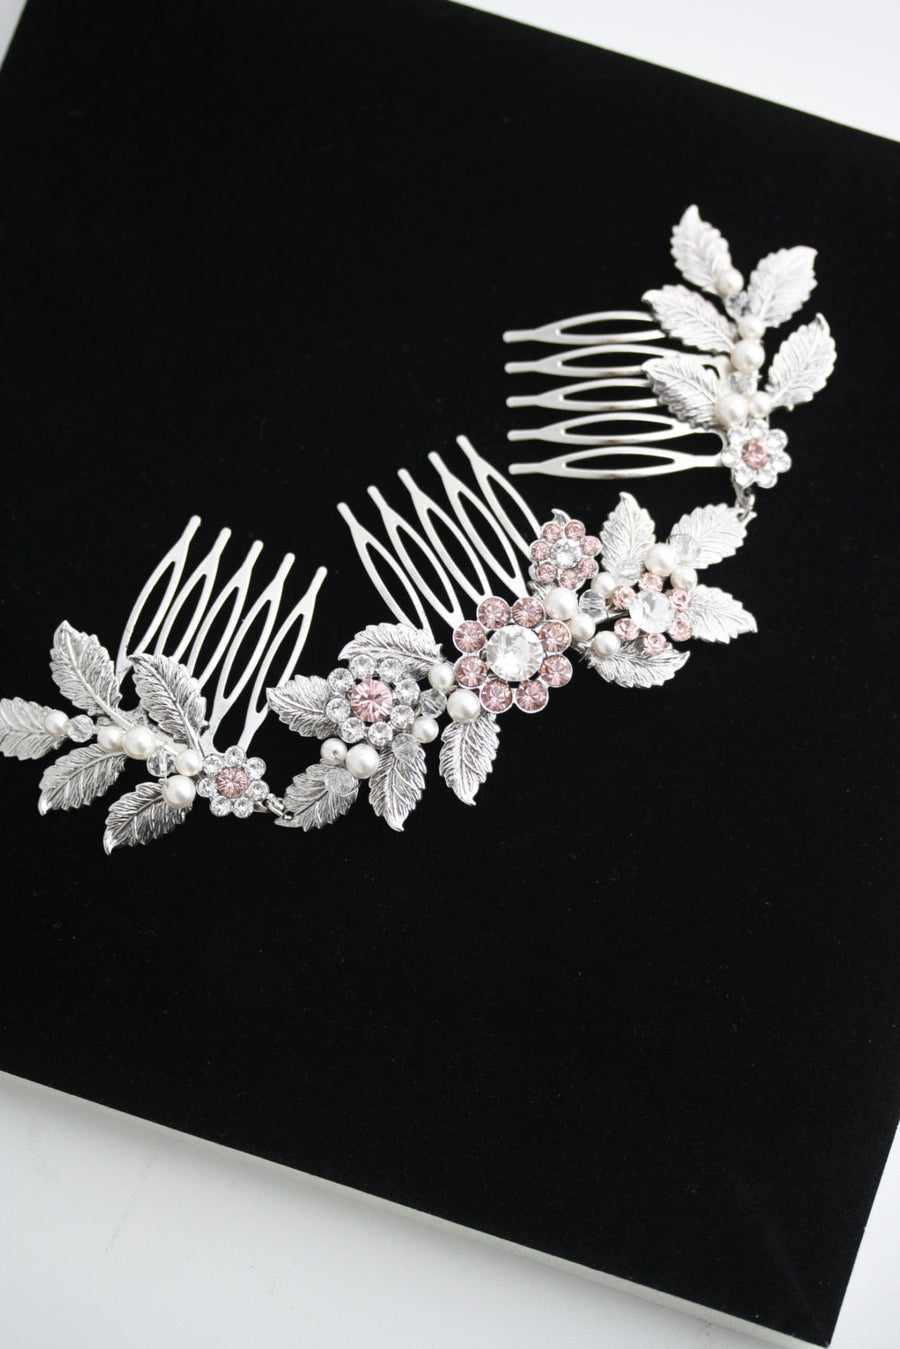 Stacey Pink Blush Bridal Hair Comb